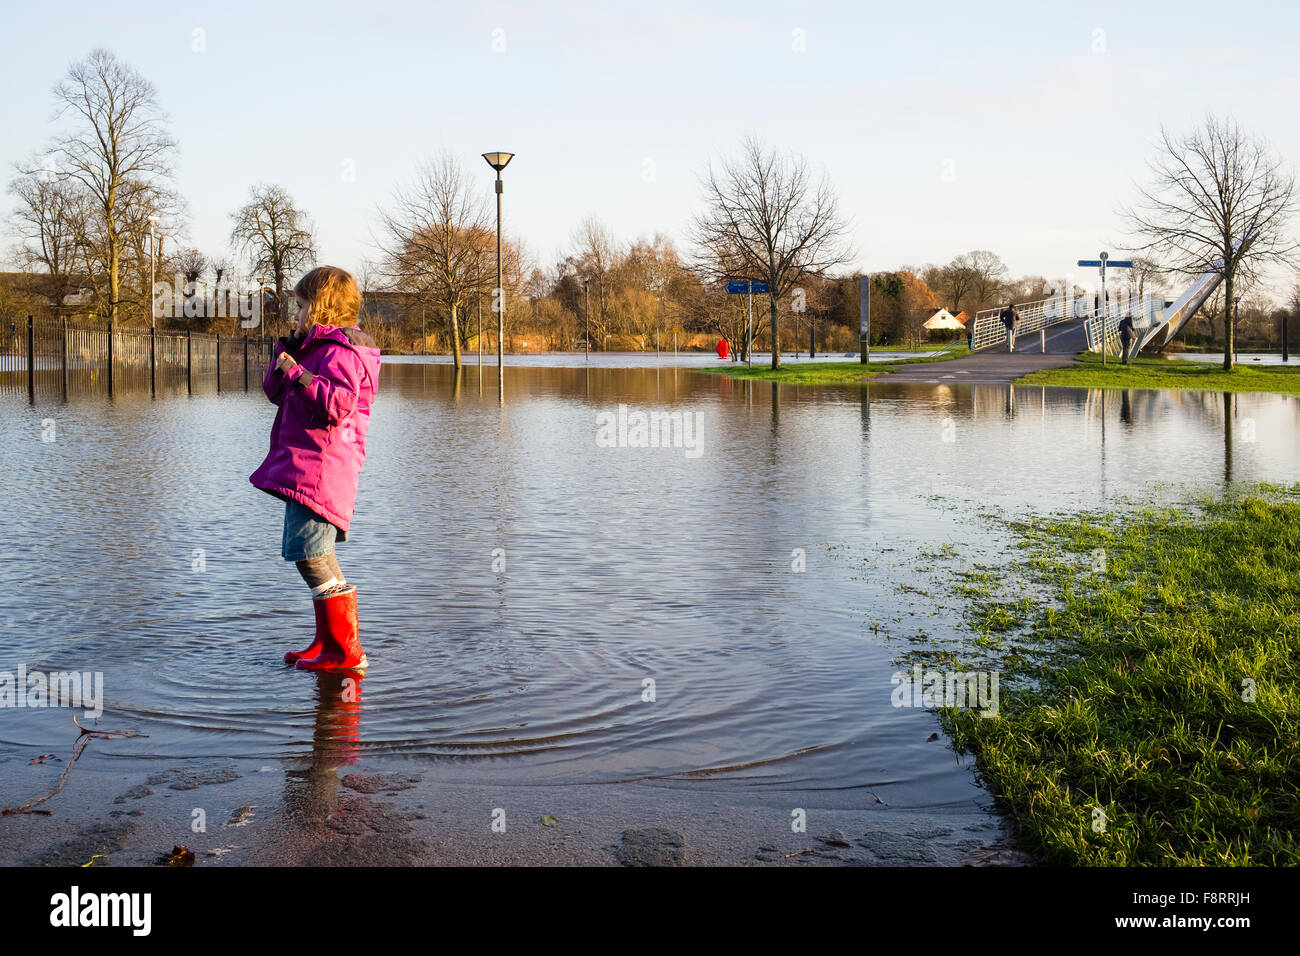 Girl in red boots reflected in floodwater, River Ouse, City of York, Yorkshire, England, UK Stock Photo